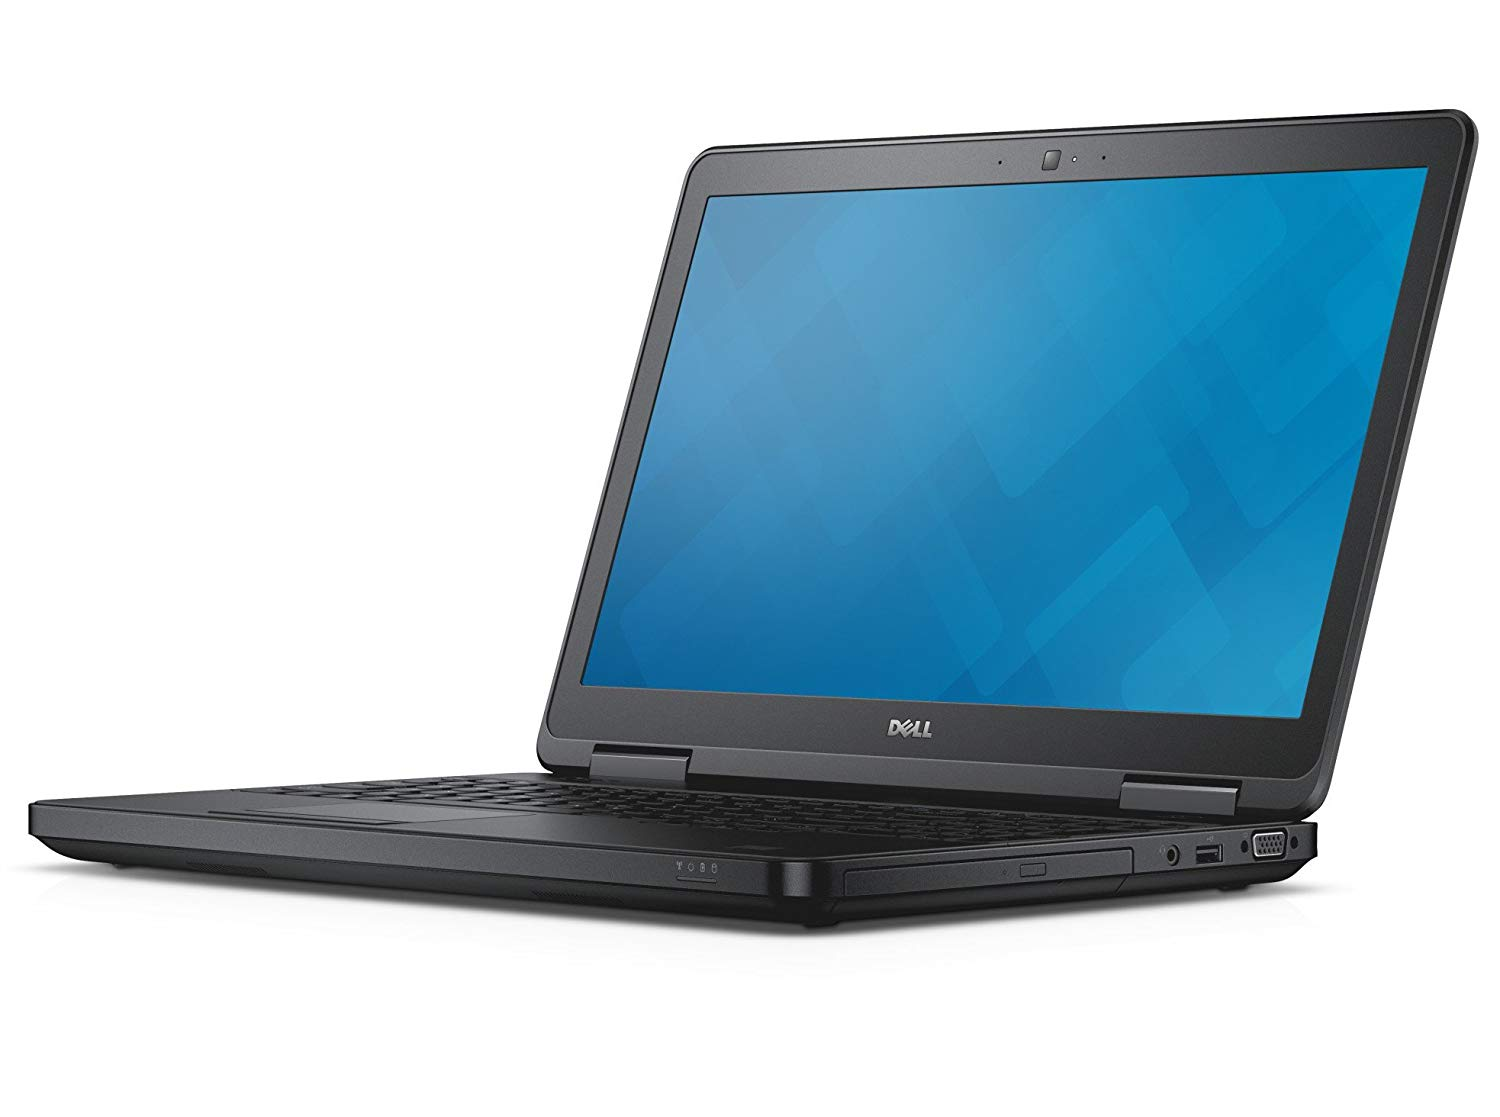 Laptop Dell Latitude E5540 i5 4200u/4GB/SSD120GB/VGA GT720M